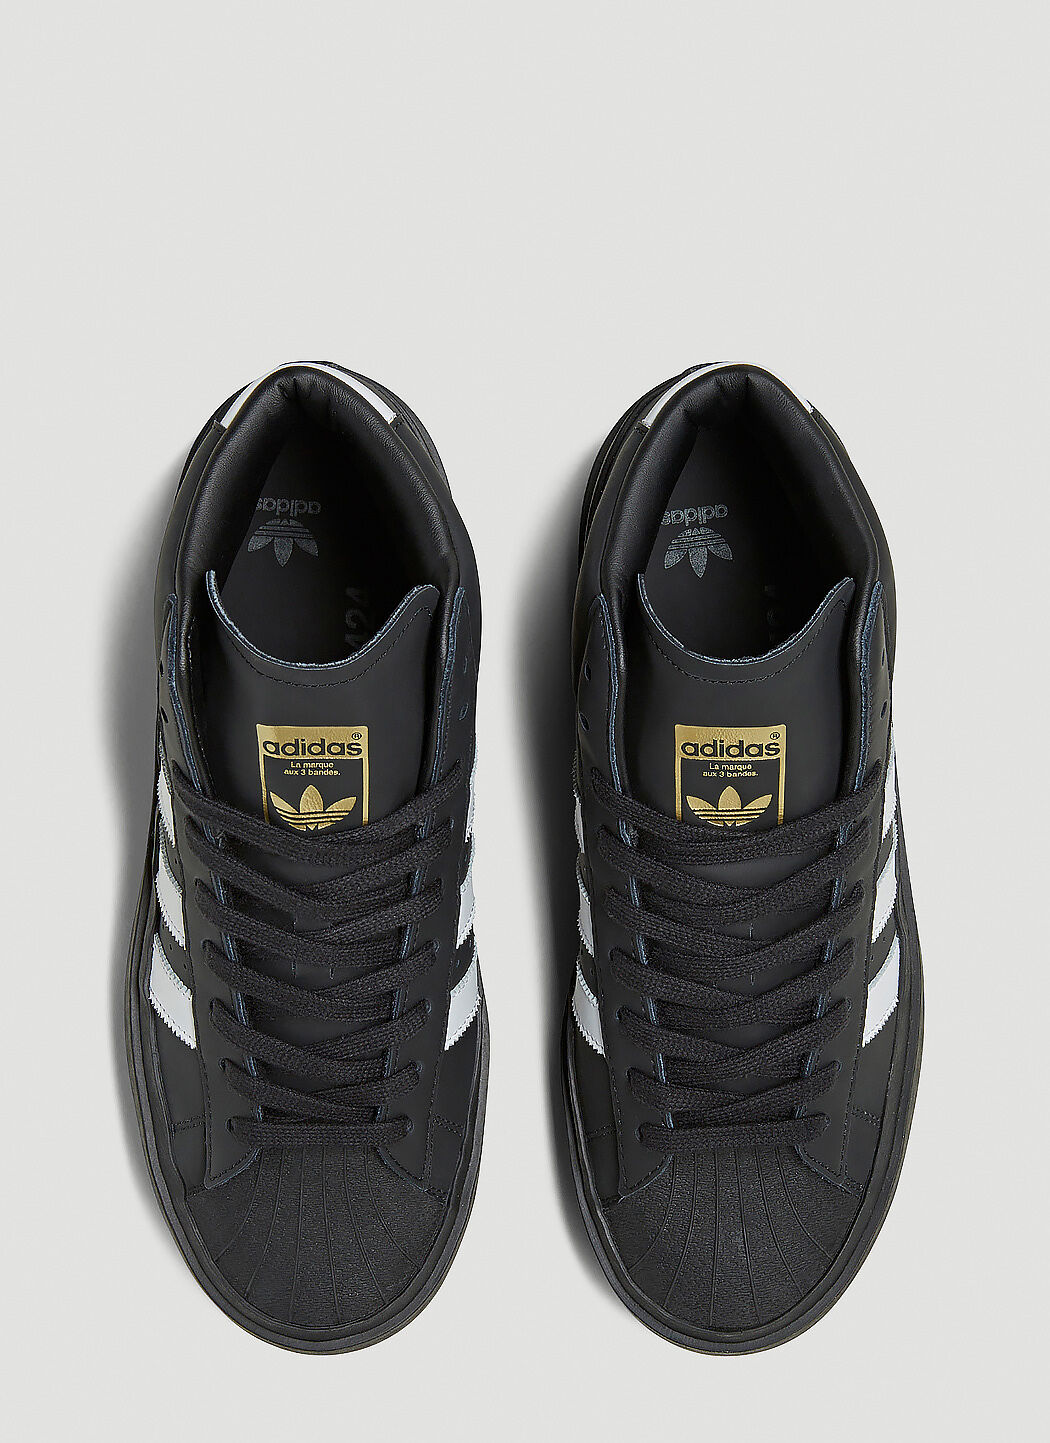 adidas by 424 Pro Model High Top Sneakers | LN CC